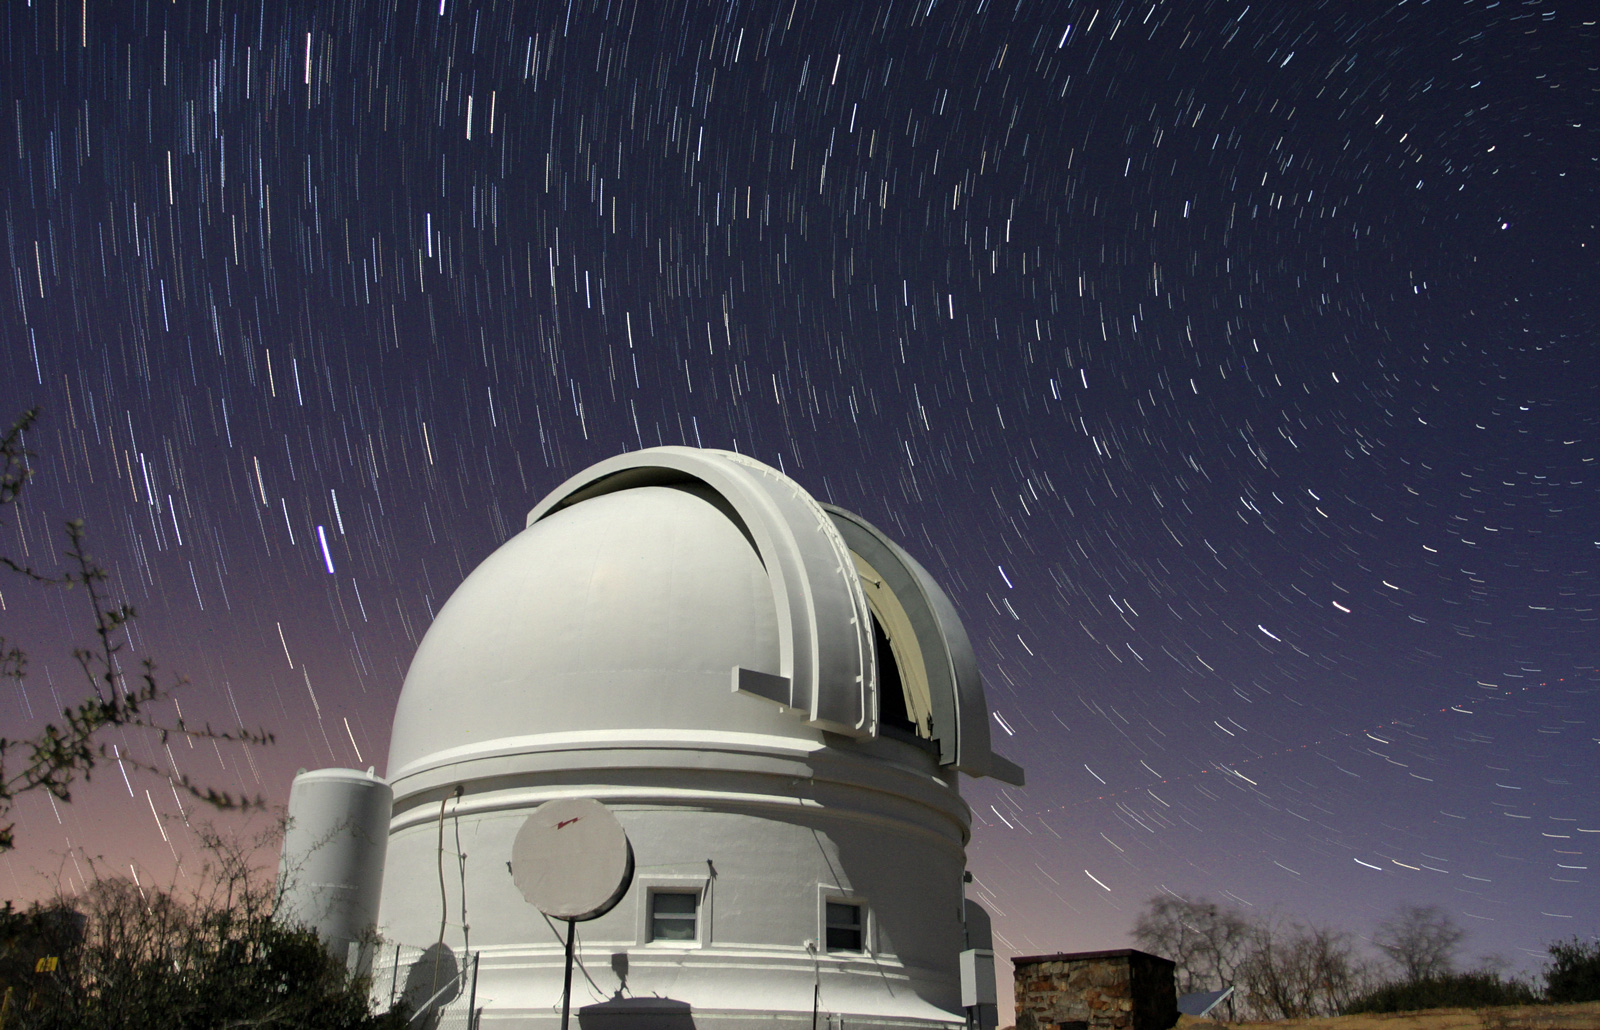 Star trails over Palomar Schmidt Dome